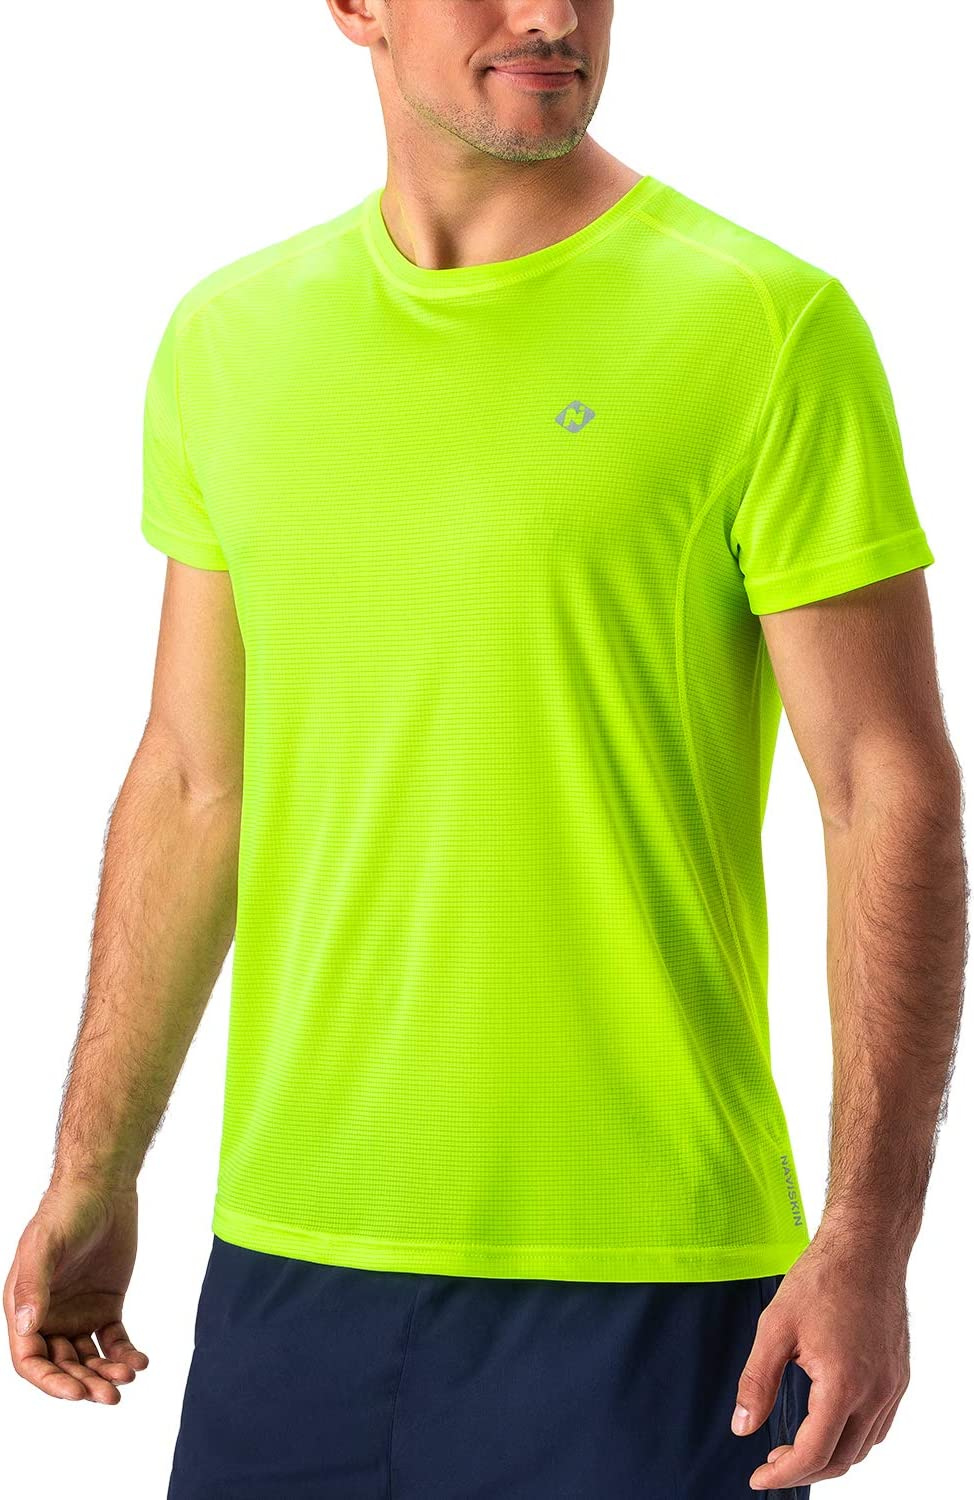 Naviskin Men's Quick Dry Workout Running Athletic Short Sleeve T-Shirt Outdoor Shirt: Clothing